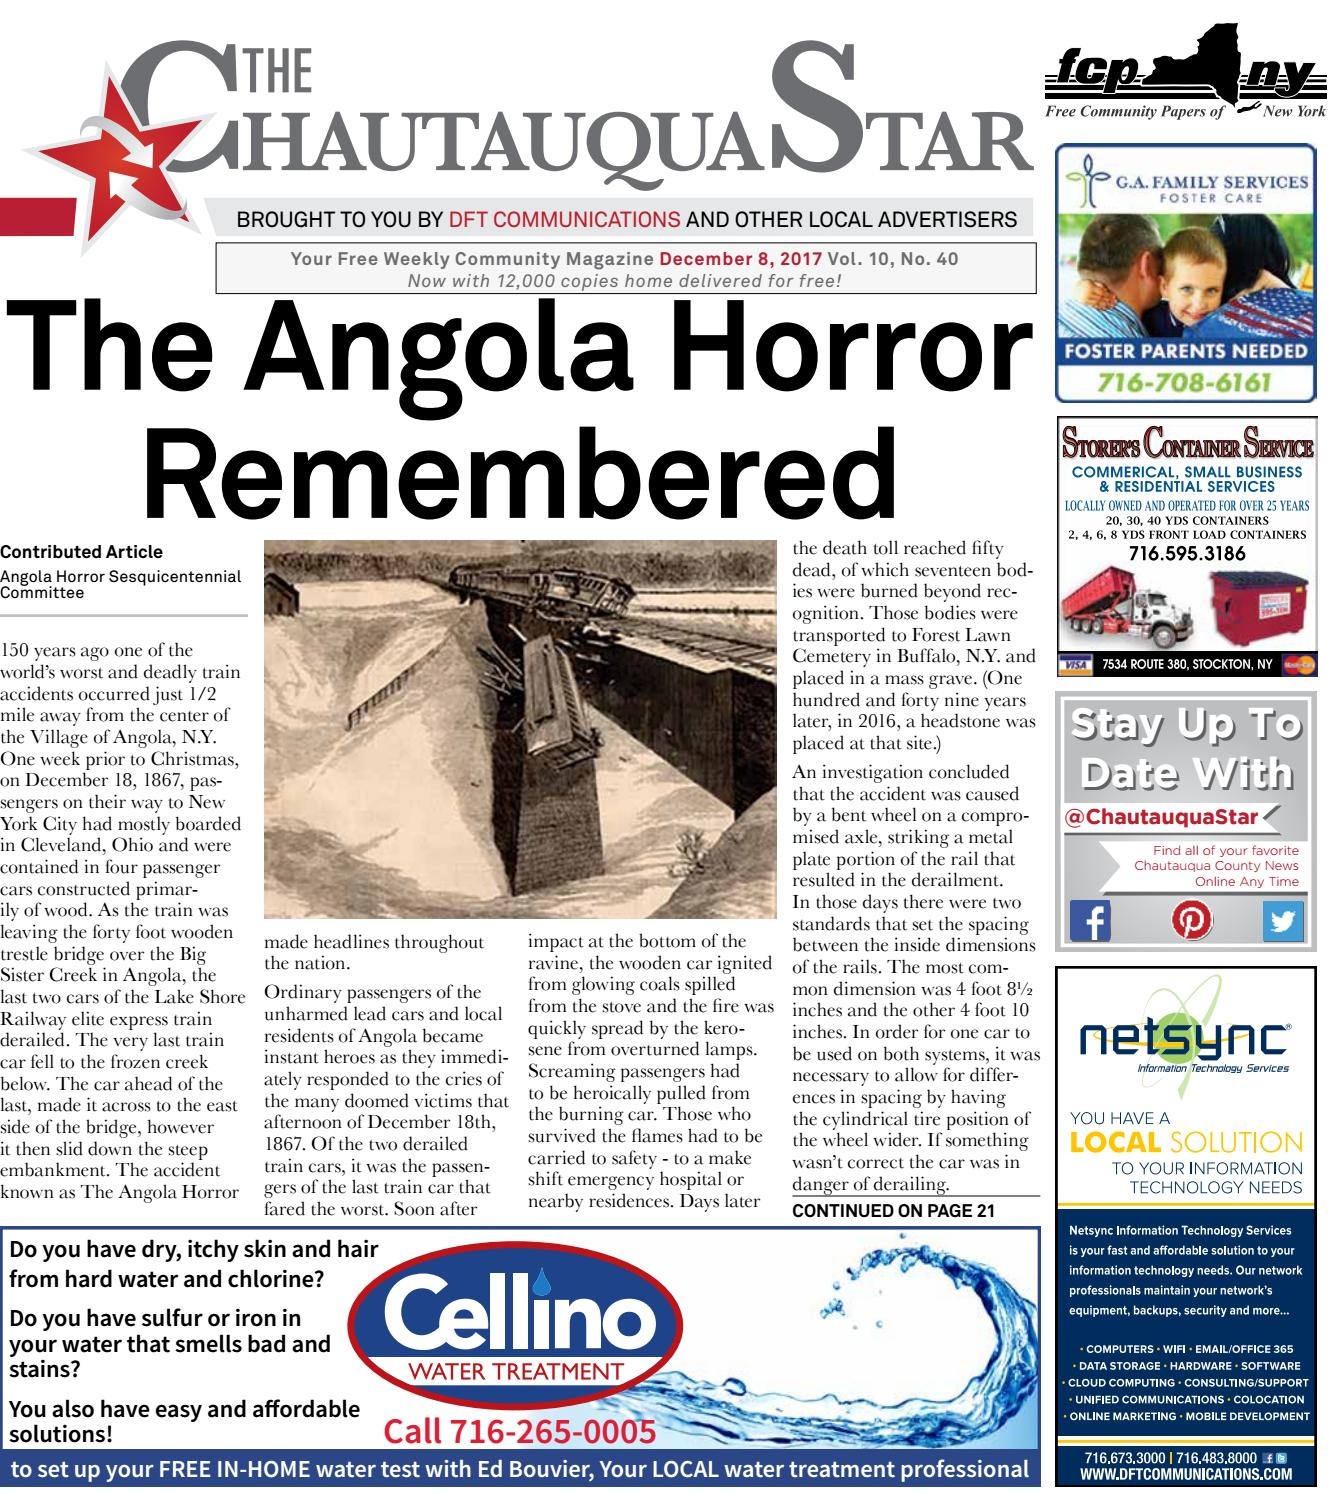 Chautauqua Star, December 08, 2017 by The Chautauqua Star